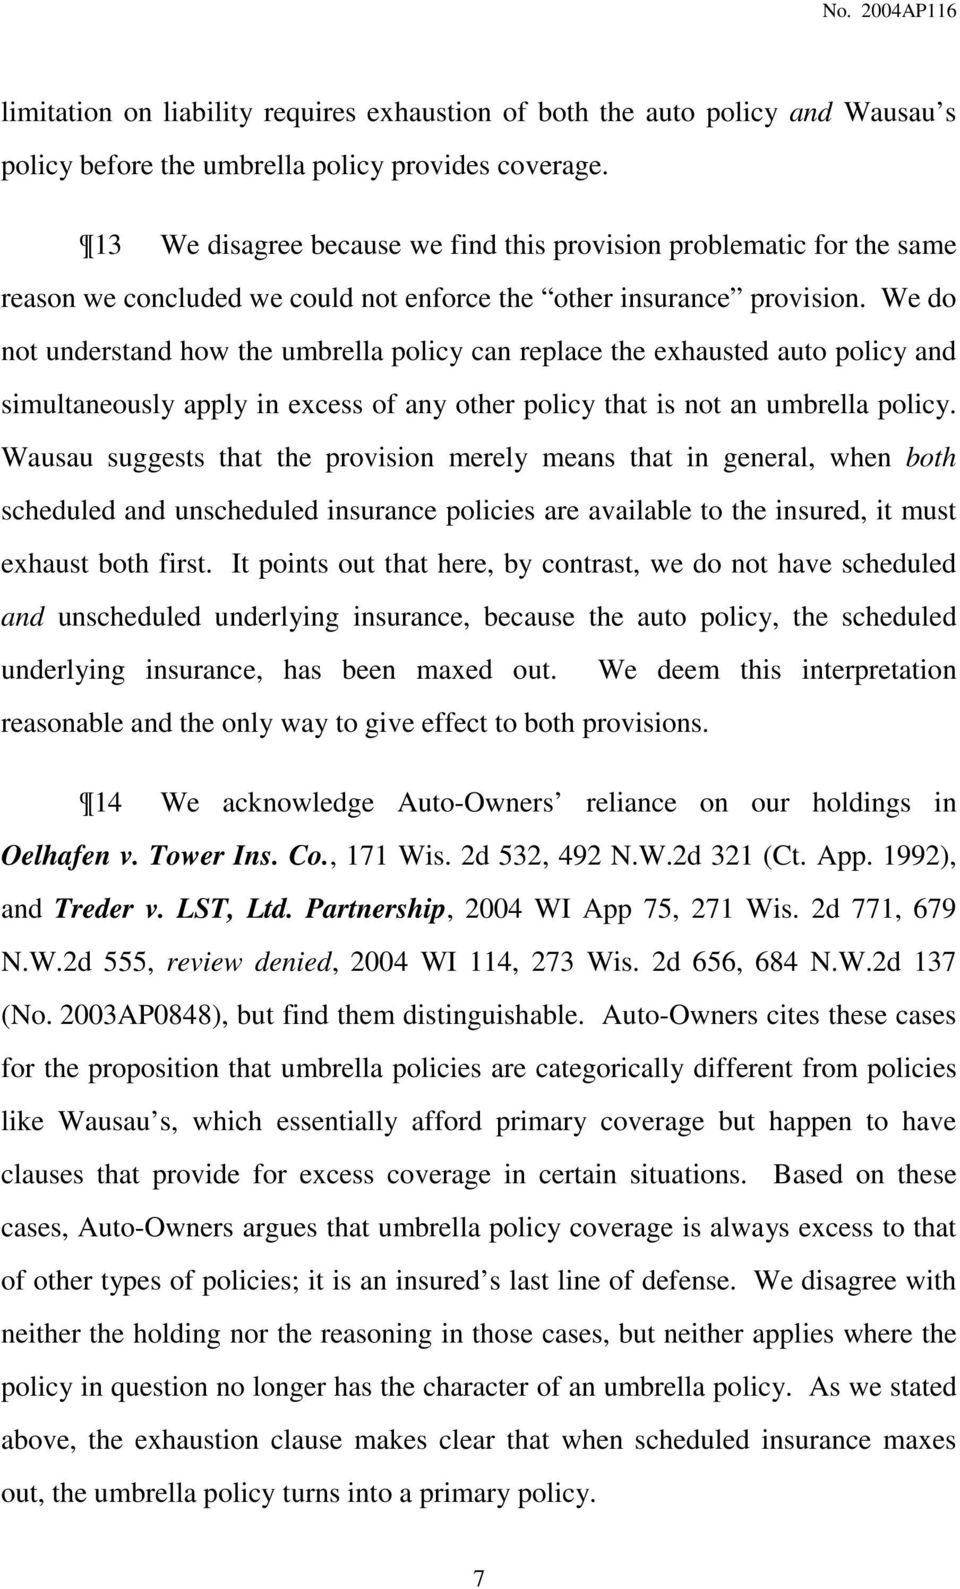 We do not understand how the umbrella policy can replace the exhausted auto policy and simultaneously apply in excess of any other policy that is not an umbrella policy.